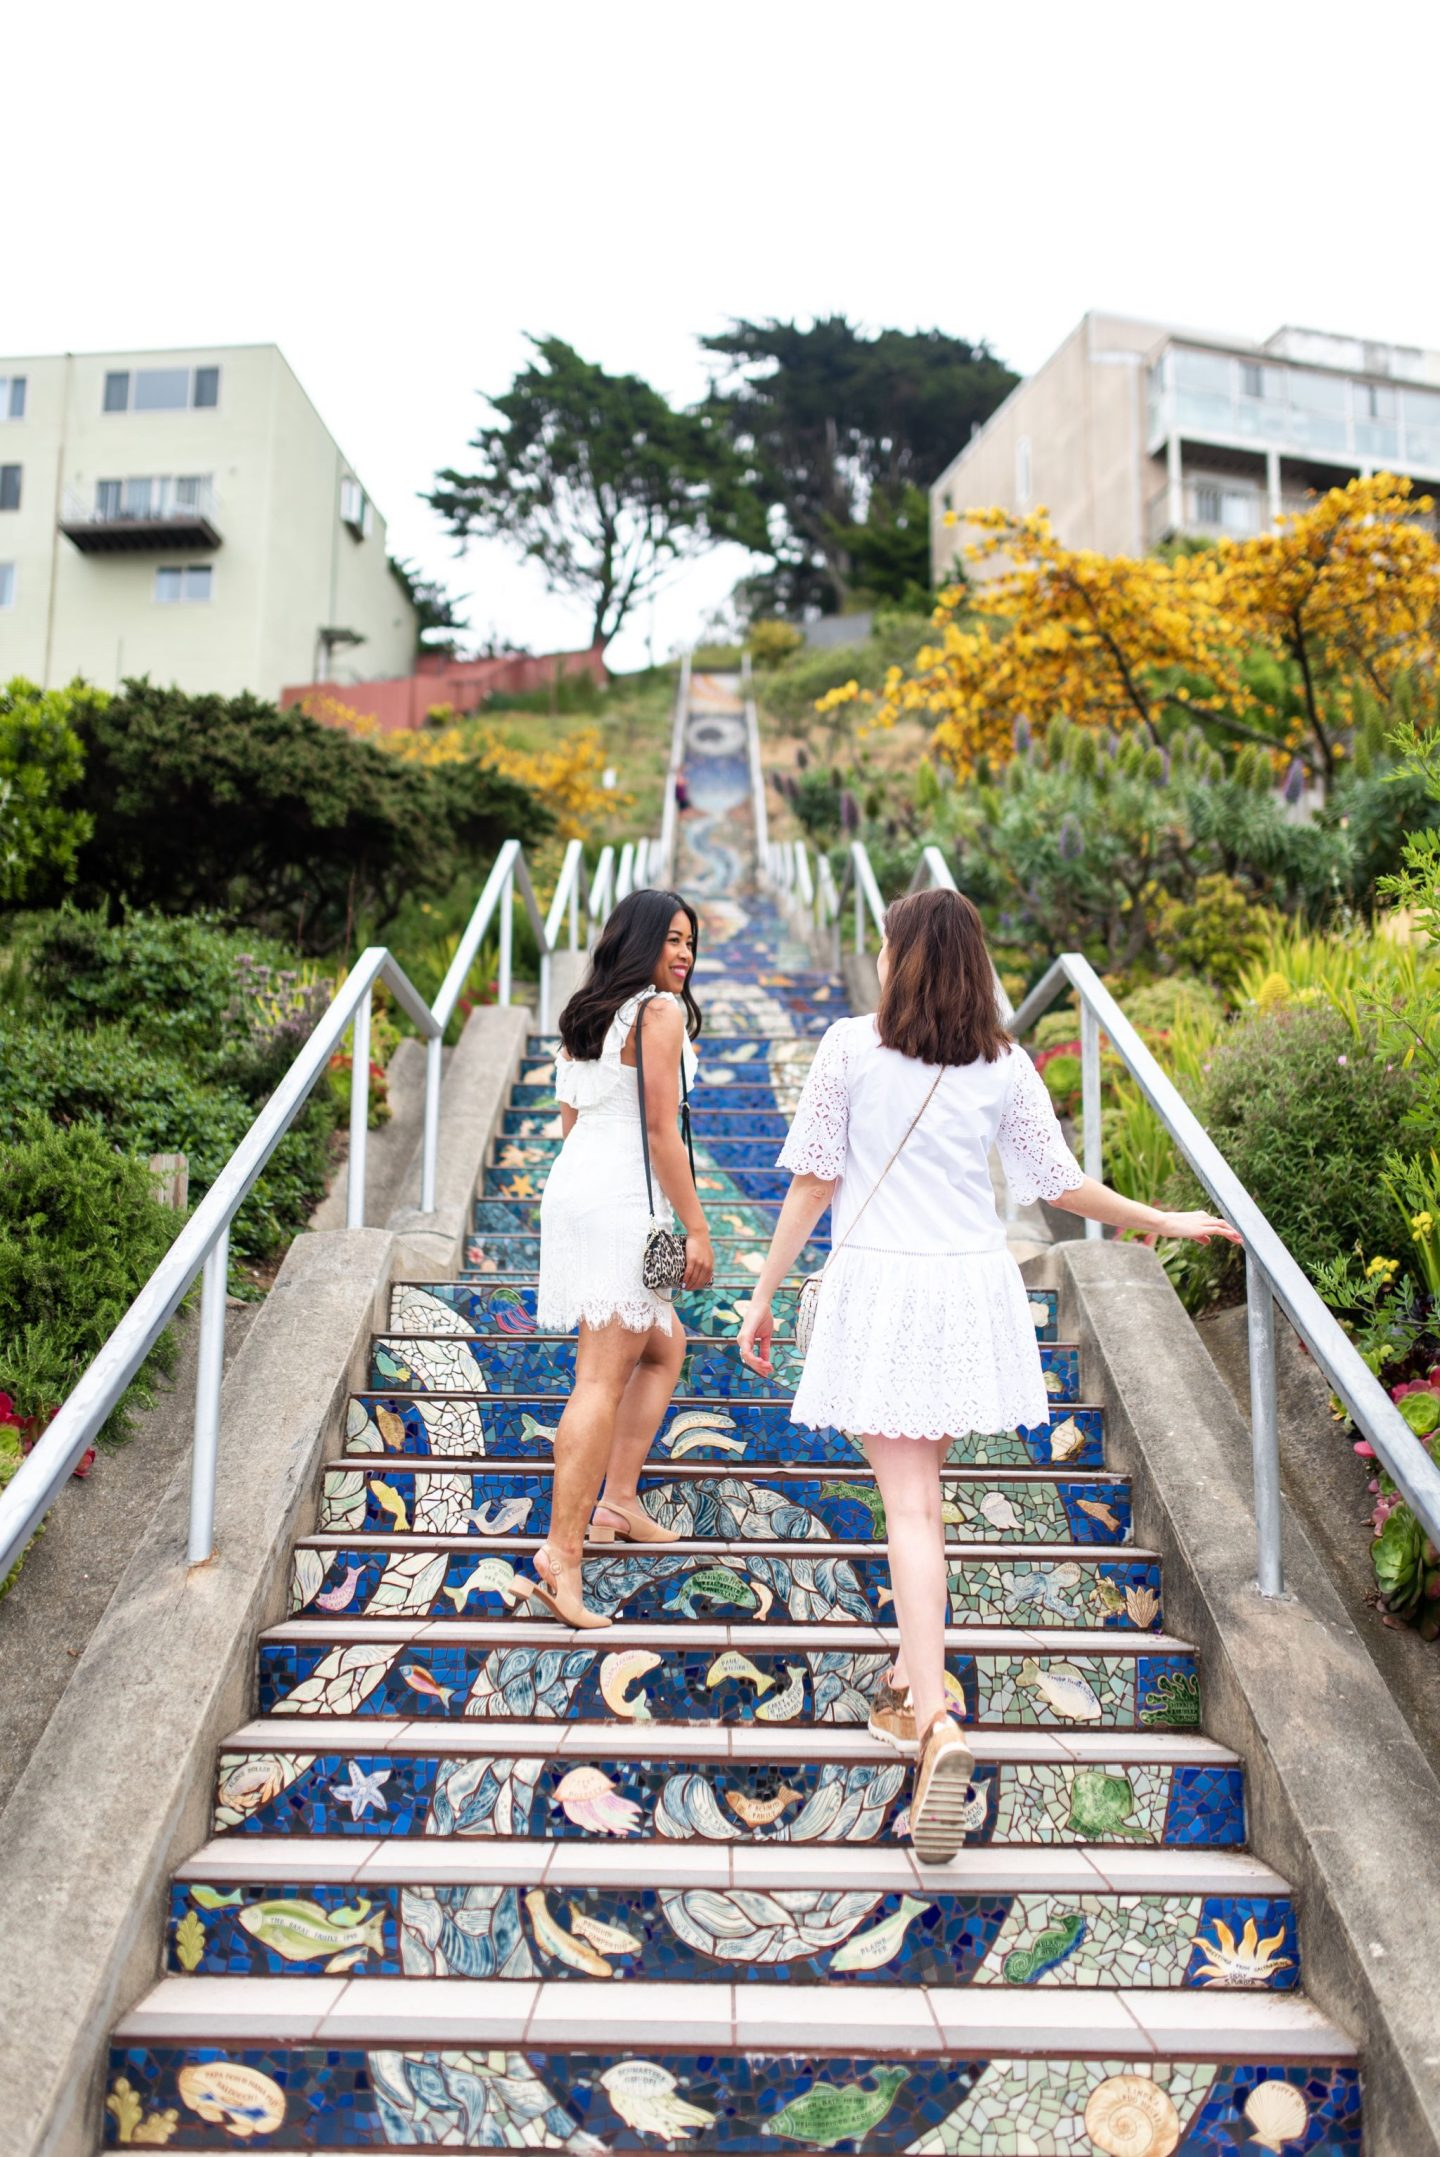 mosaic stairs - walk up the stairs - friend posing ideas - how to pose with friends